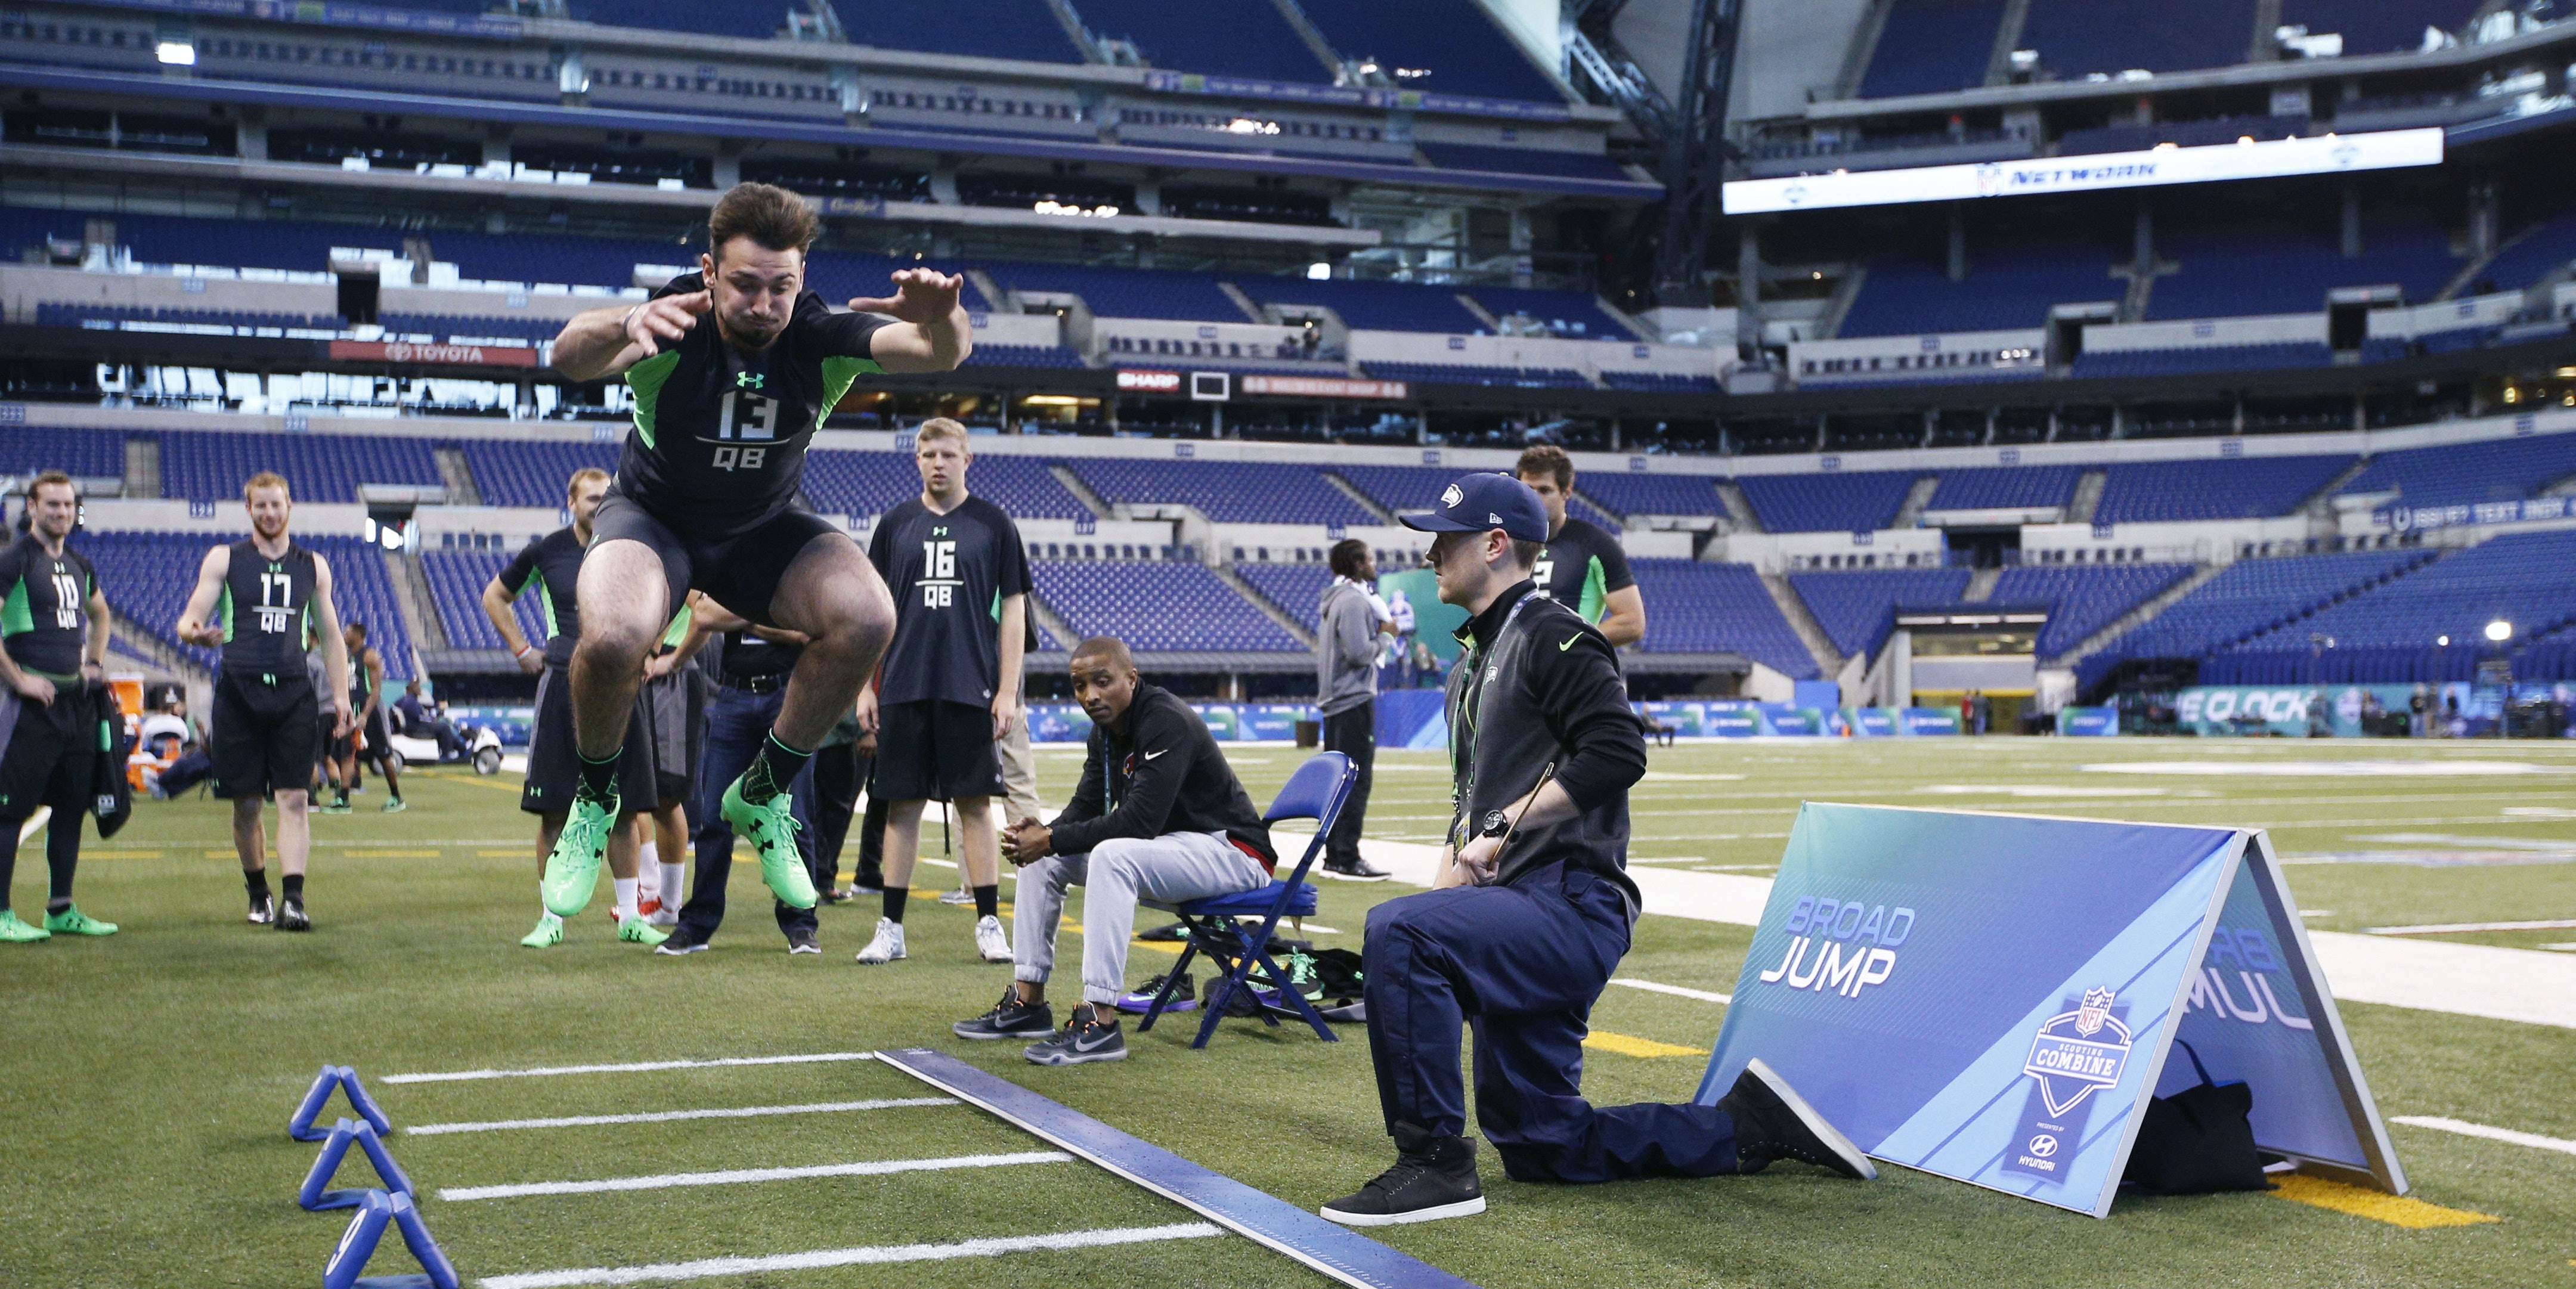 INDIANAPOLIS, IN - FEBRUARY 27: Quarterback Paxton Lynch of Memphis participates in the broad jump during the 2016 NFL Scouting Combine at Lucas Oil Stadium on February 27, 2016 in Indianapolis, Indiana. (Photo by Joe Robbins/Getty Images)